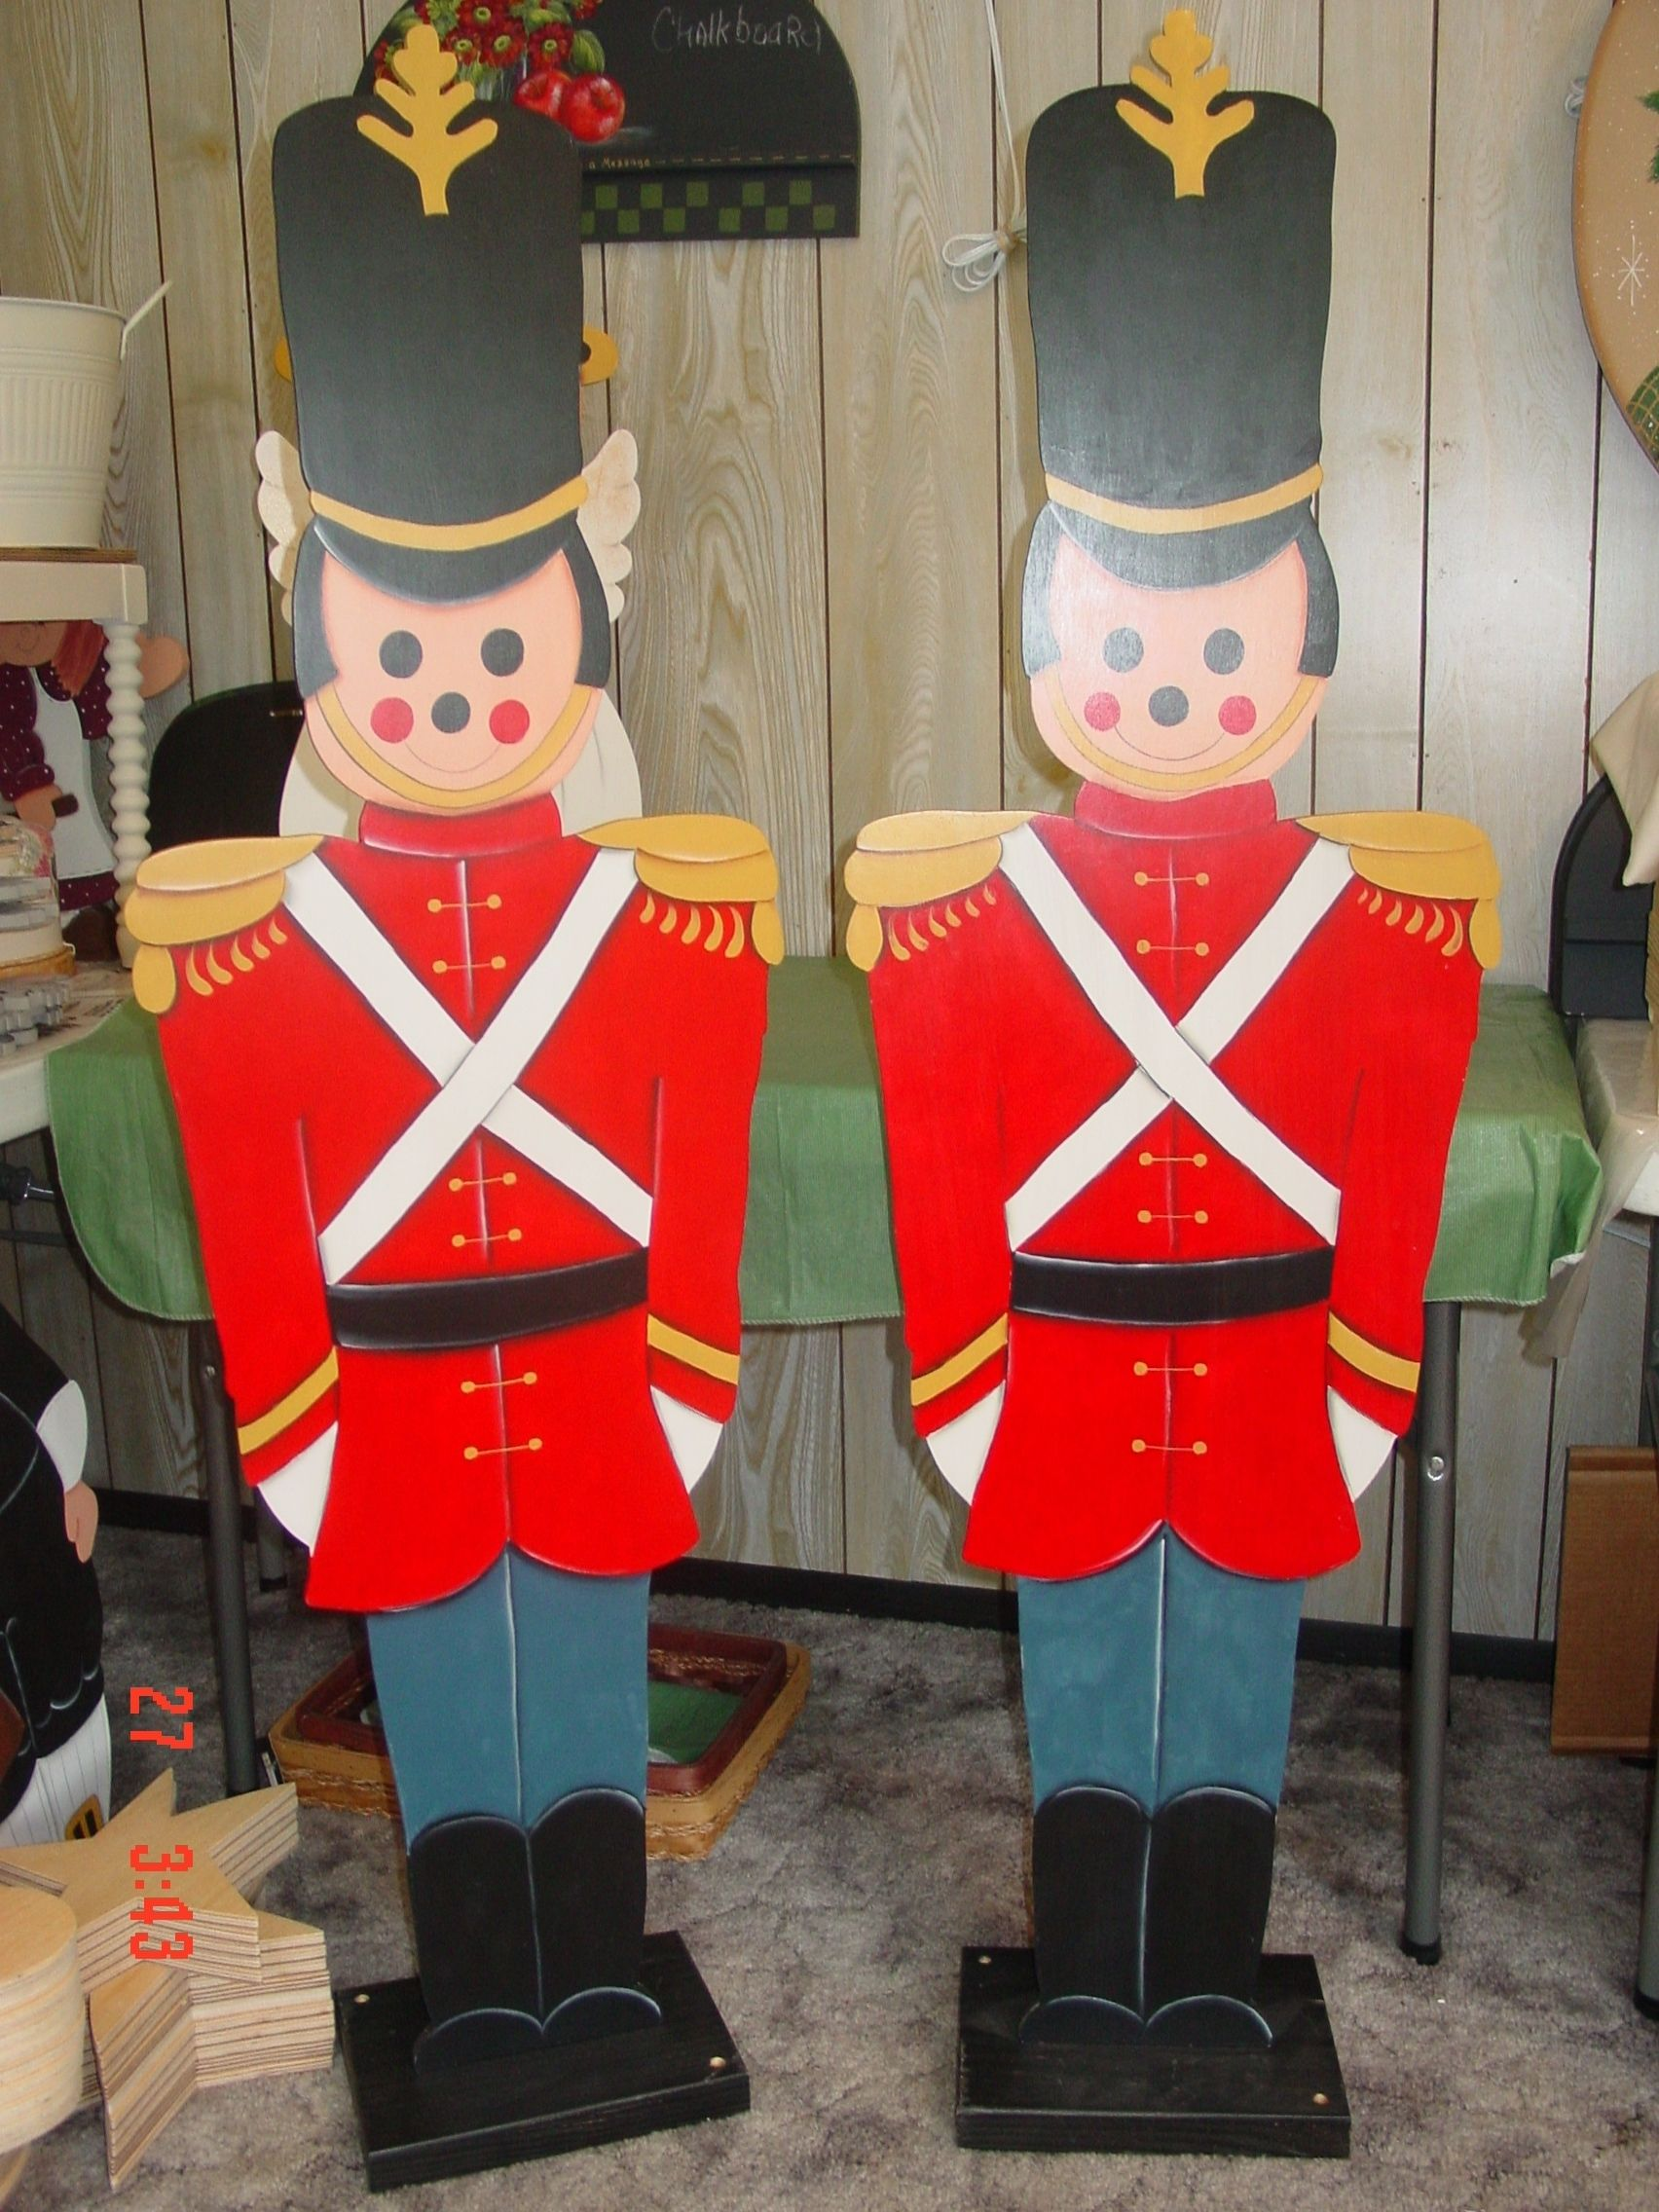 Custom Designed Hand Painted Toy Soldiers By Judy Mullins